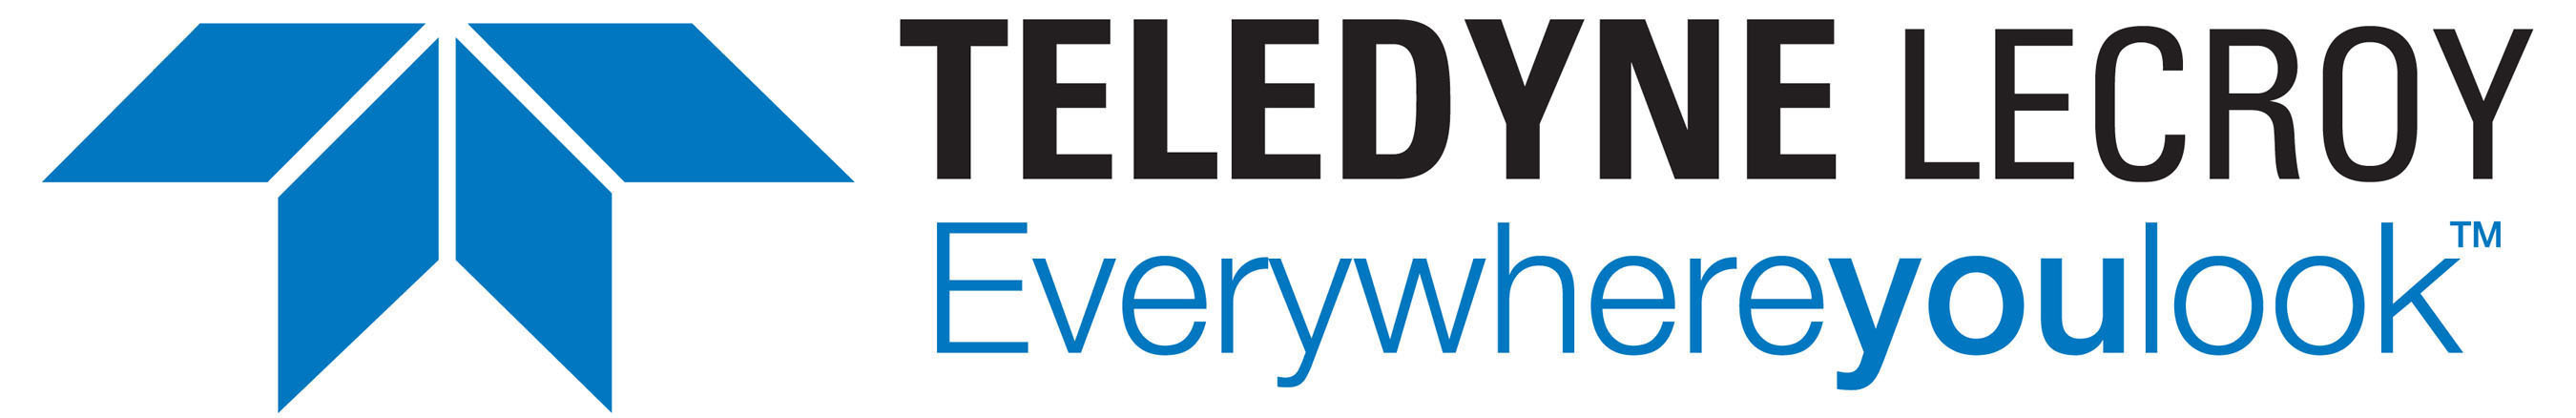 Teledyne LeCroy is a leading provider of oscilloscopes, protocol analyzers and related test and measurement solutions that enable companies across a wide range of industries to design and test electronic devices of all types.